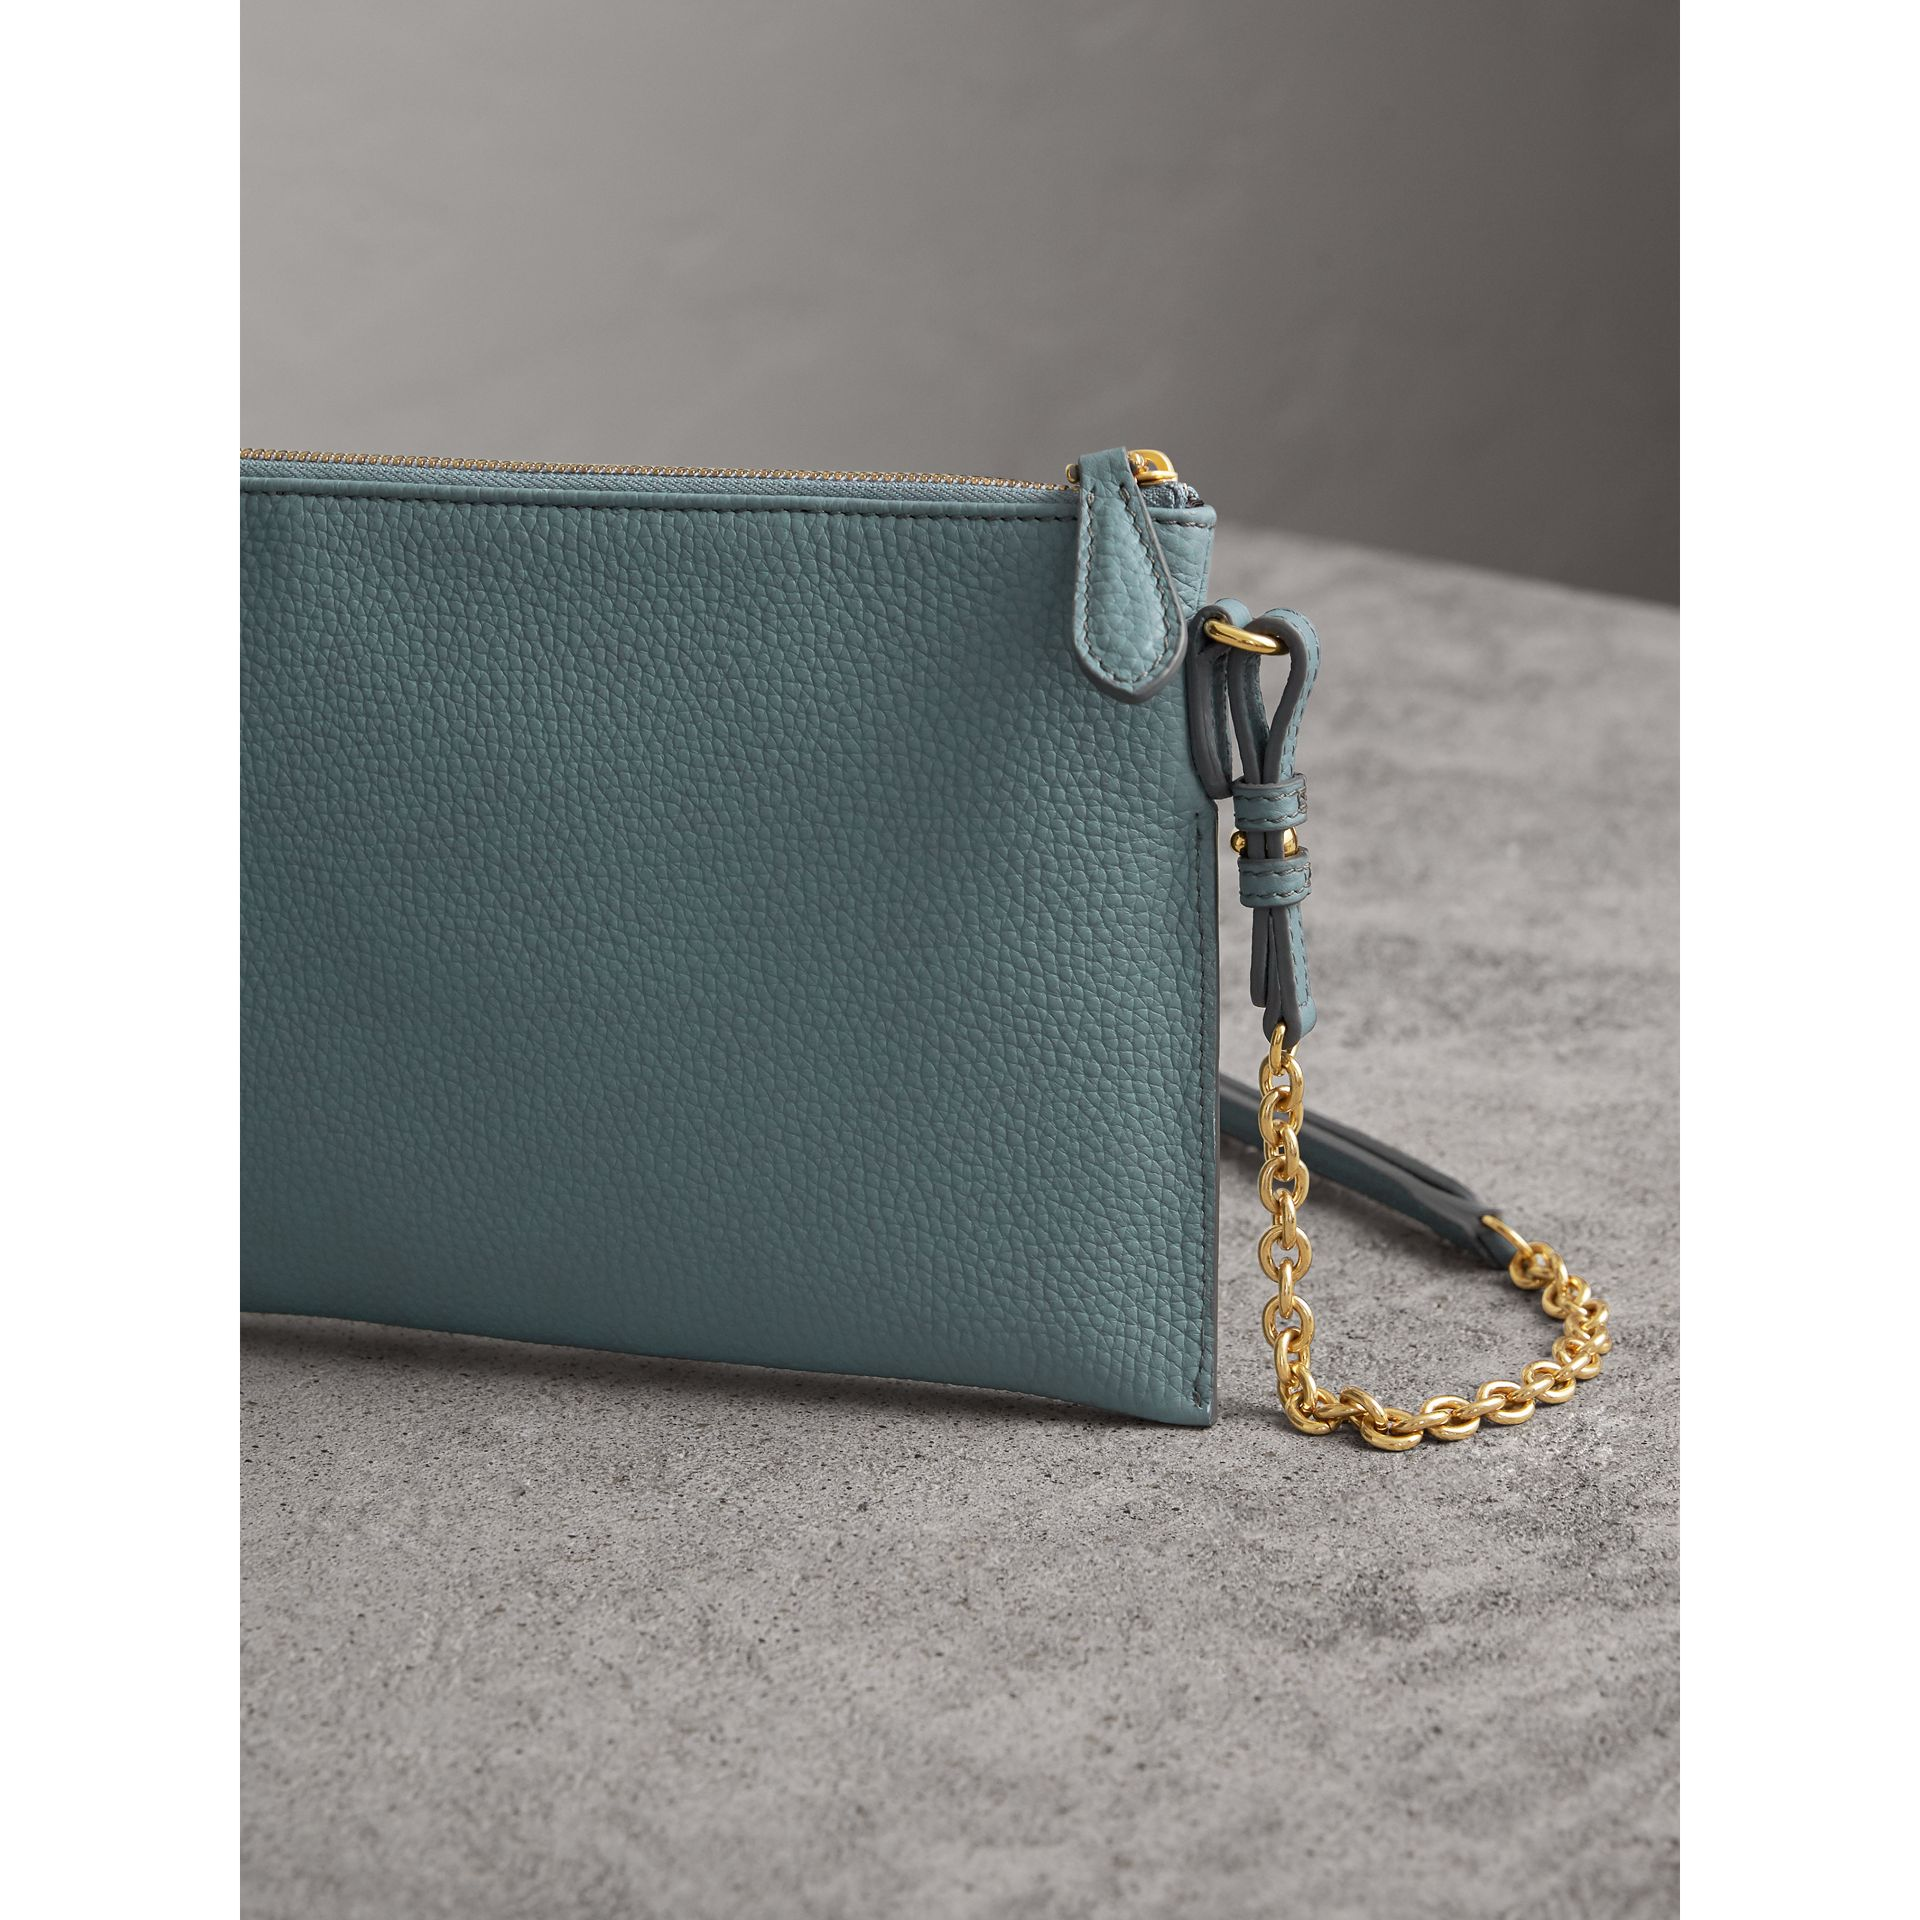 Embossed Leather Clutch Bag in Dusty Teal Blue - Women | Burberry United States - gallery image 4